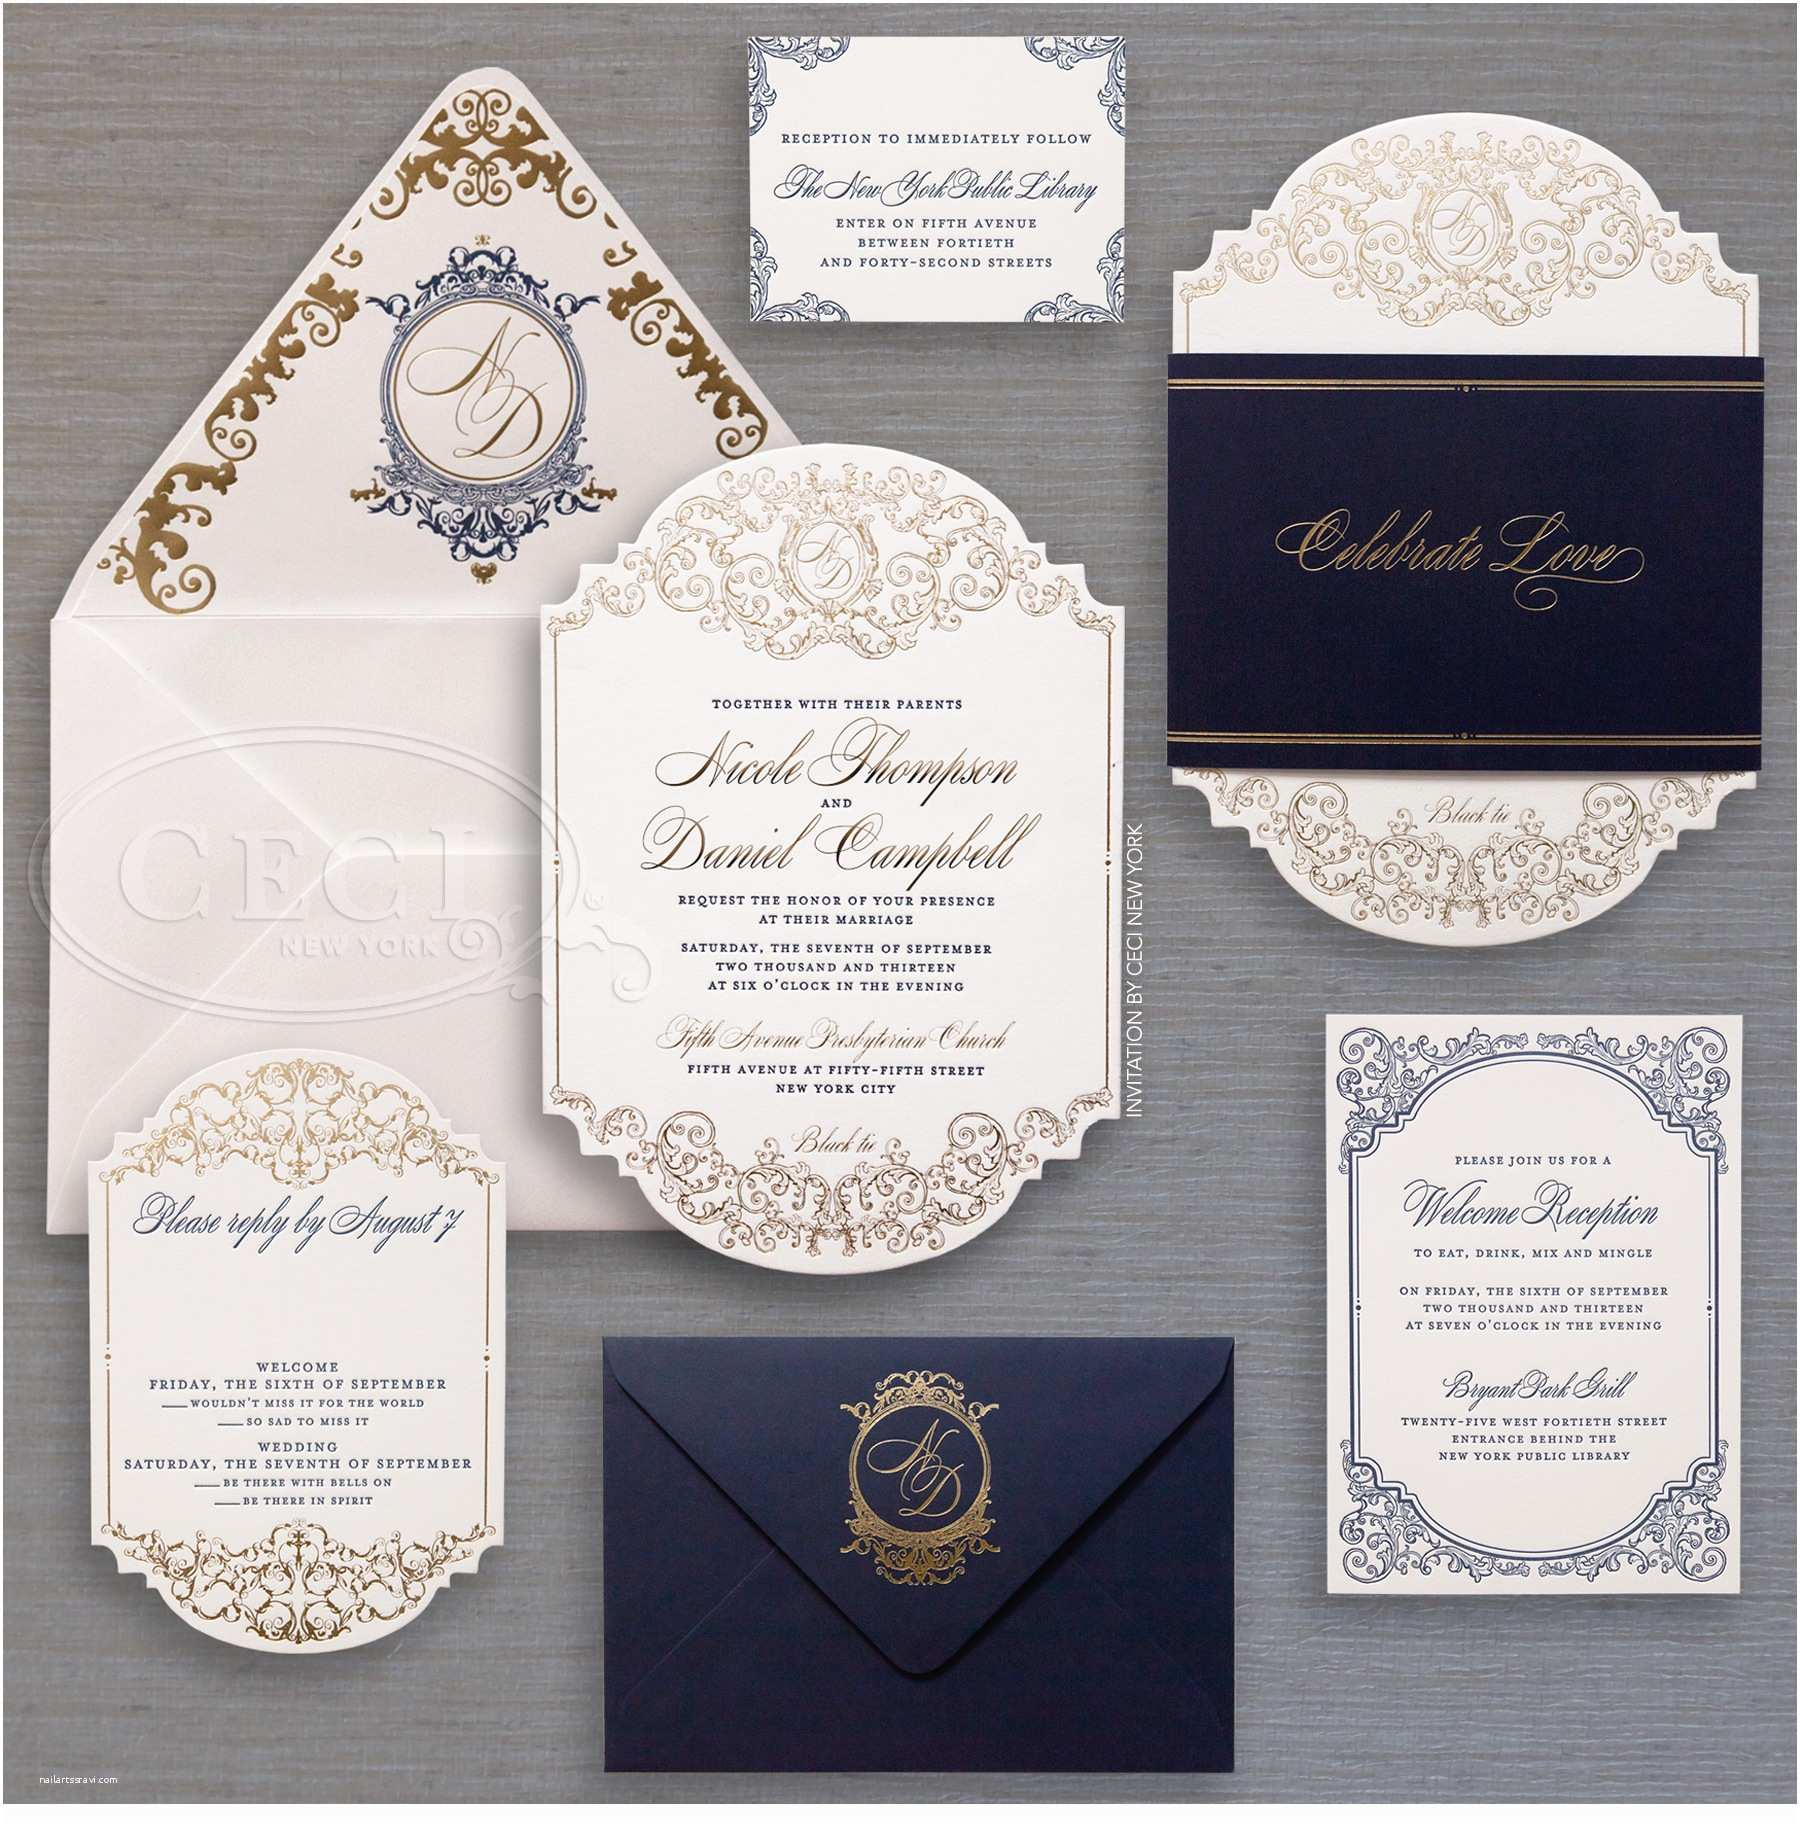 New Wedding Invitations V224 Our Muse sophisticated Wedding at the New York